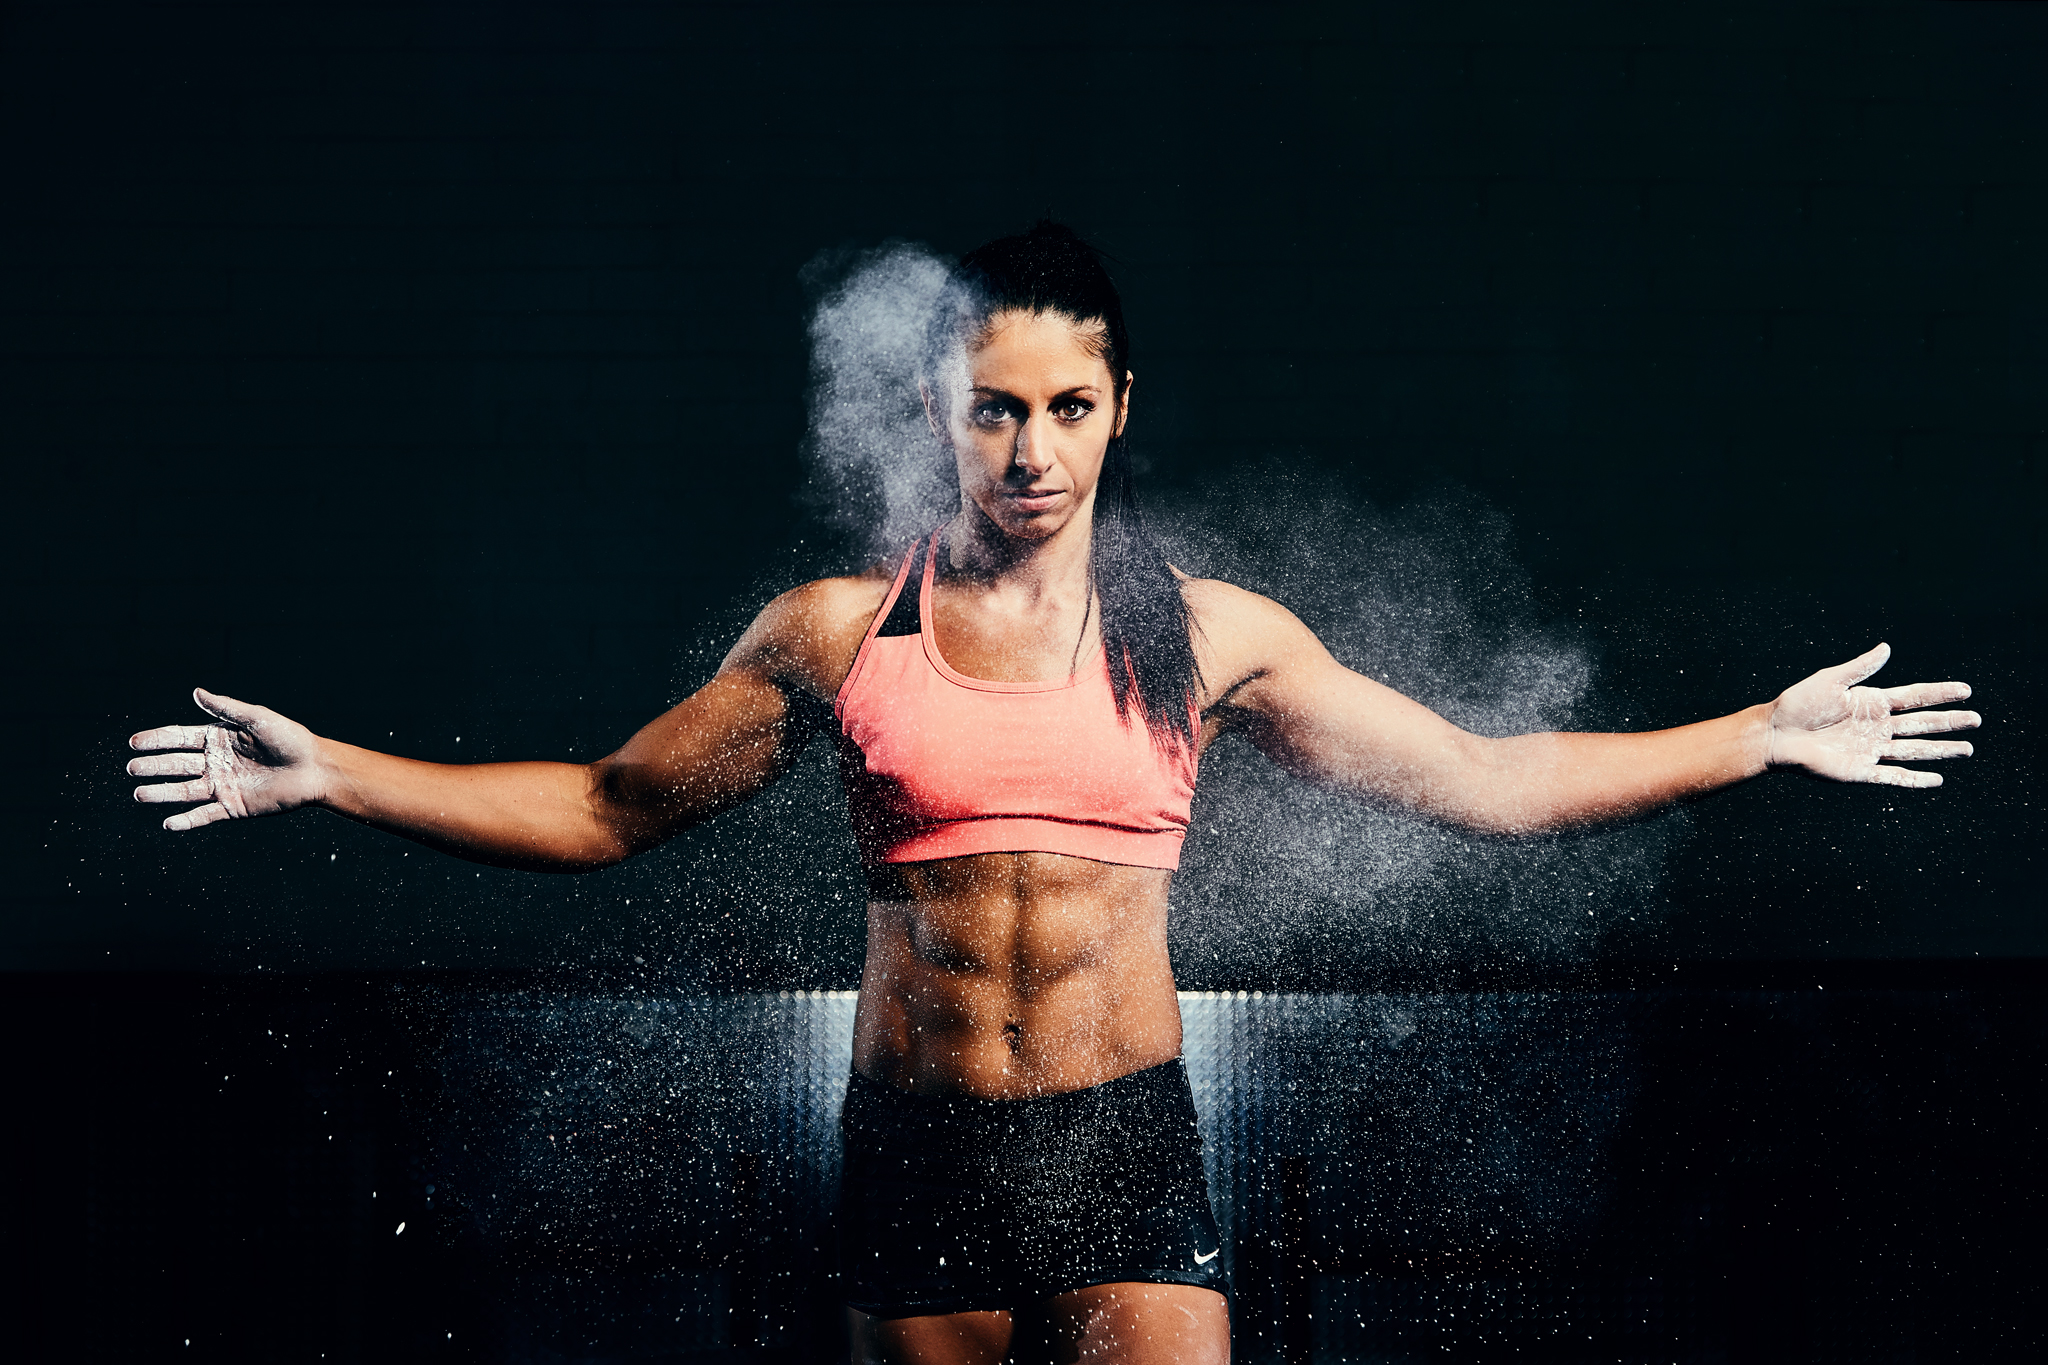 Fitness Competitor Photoshoot - chalk clapping - April Bleicher